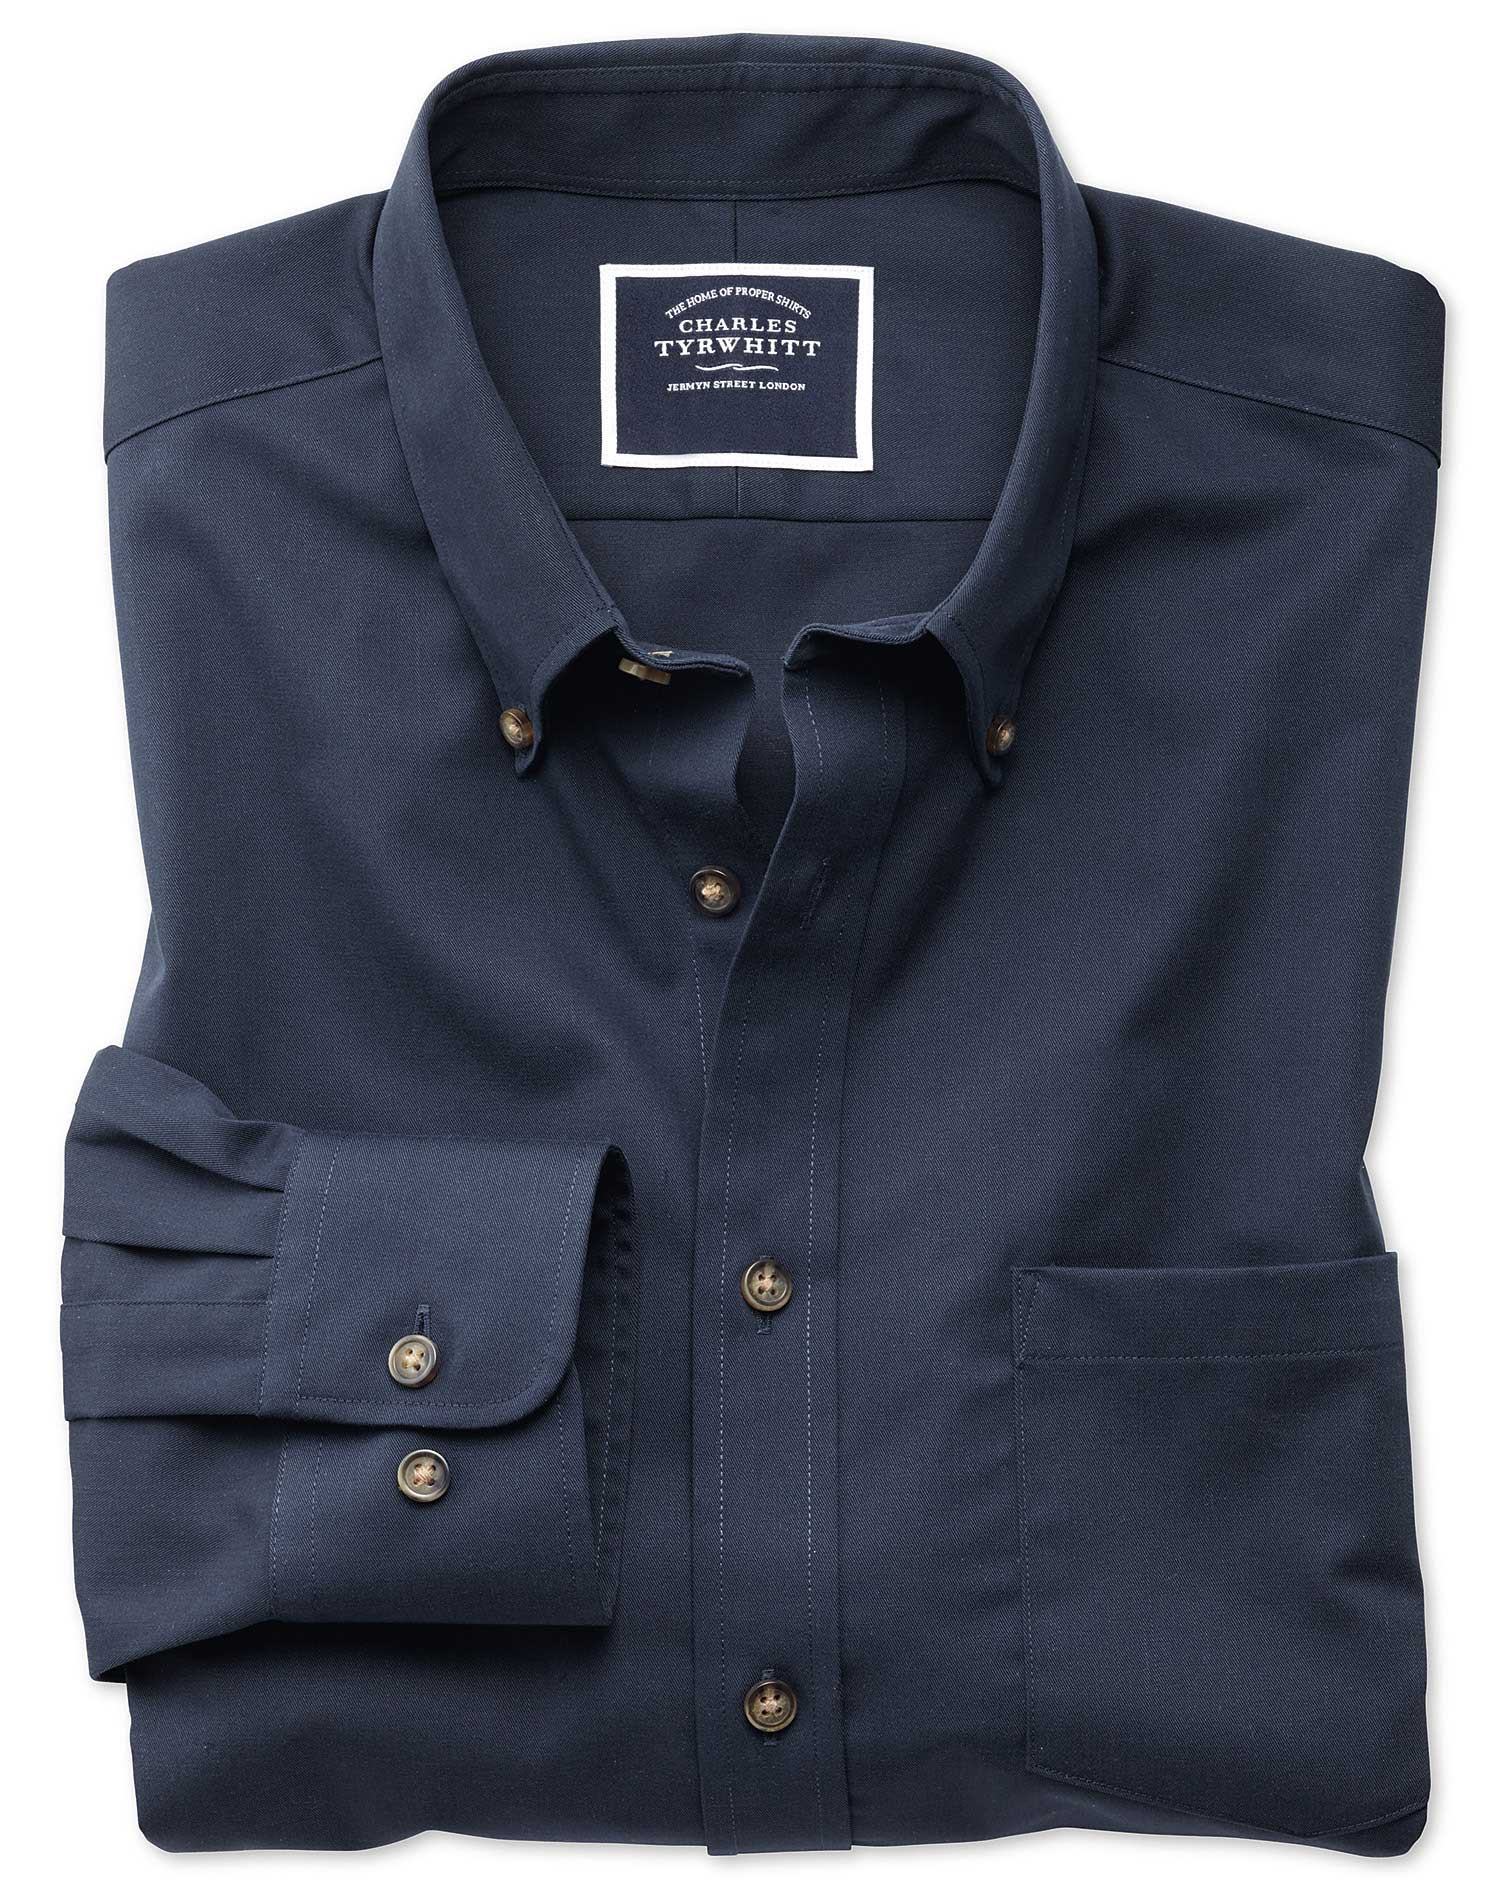 Classic Fit Button-Down Non-Iron Twill Navy Cotton Shirt Single Cuff Size Large by Charles Tyrwhitt